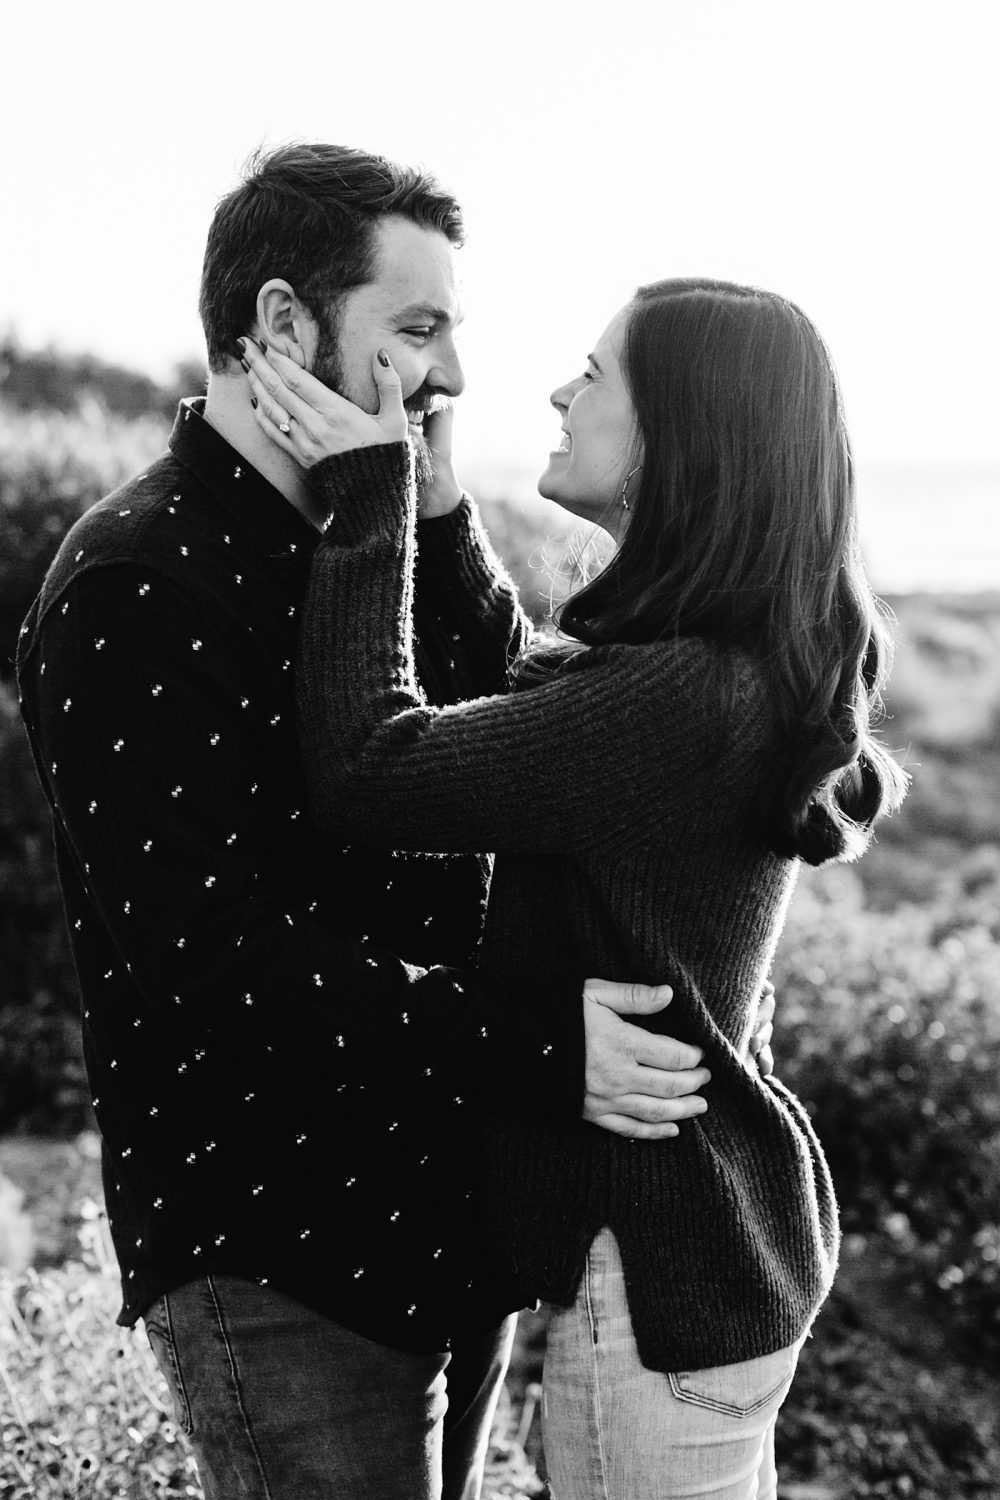 Candid engagement photo inspiration